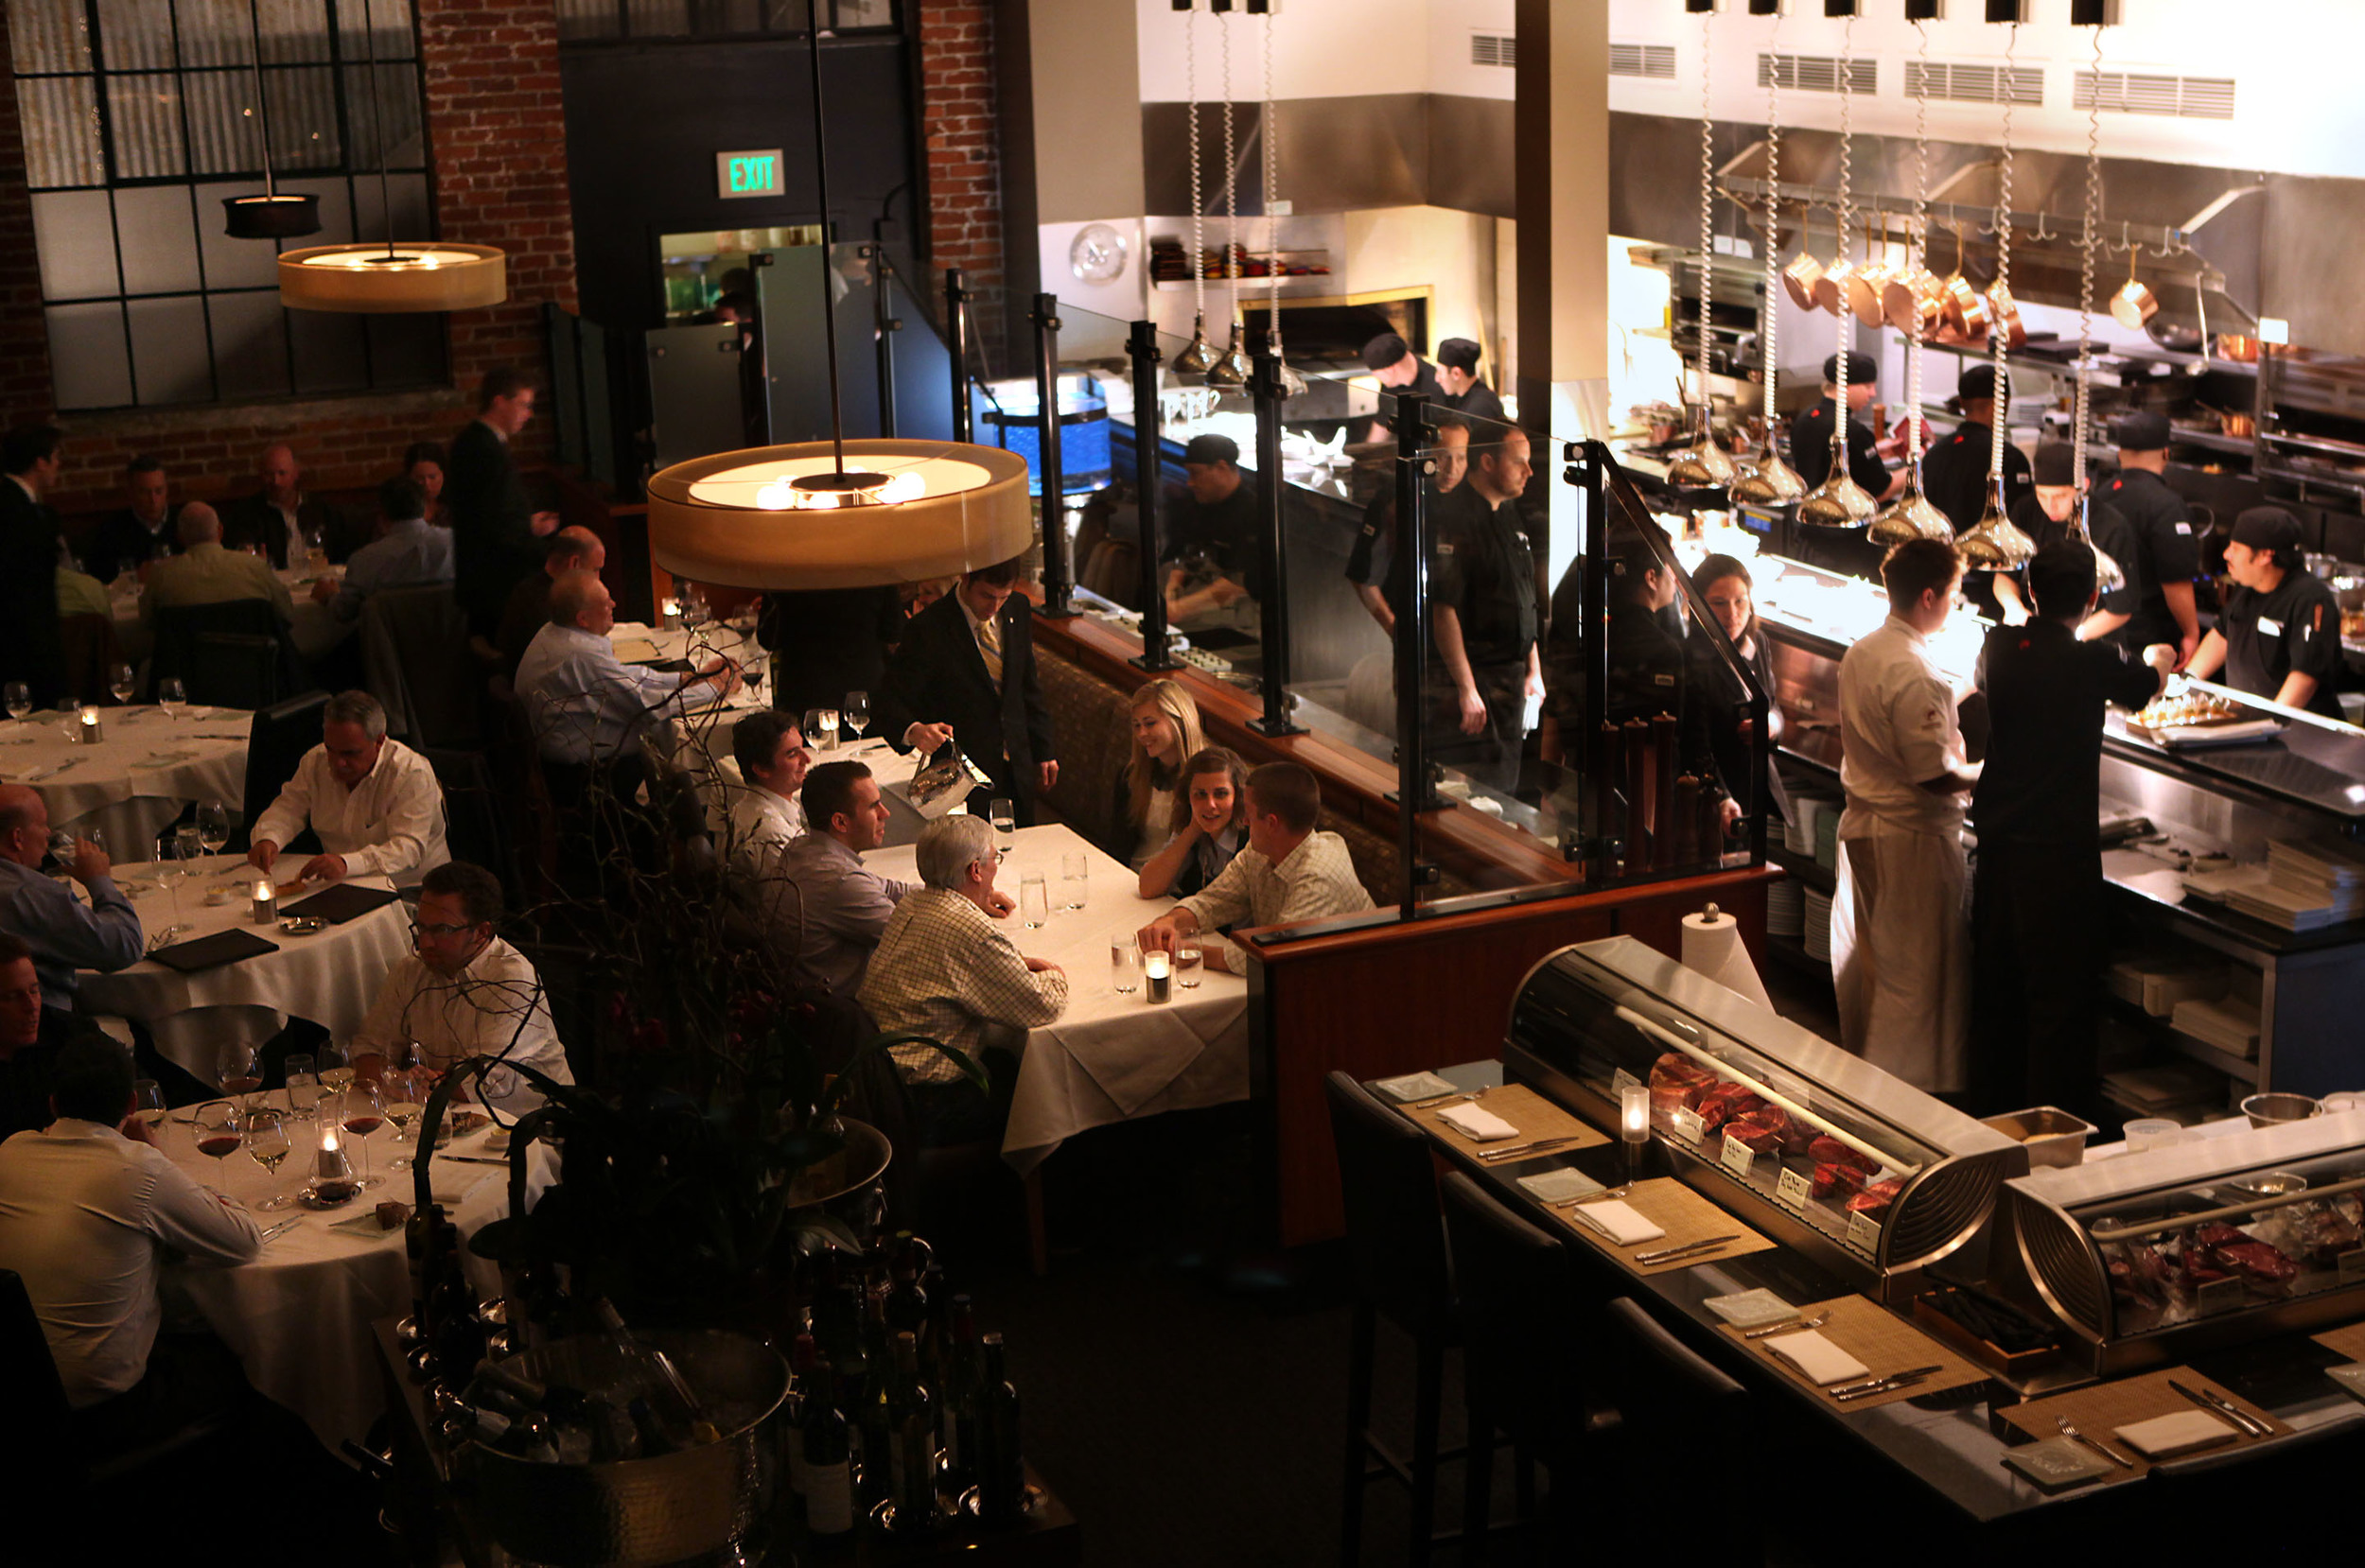 Renowned Gary Danko is one of the most consistently lauded restaurants in the city.